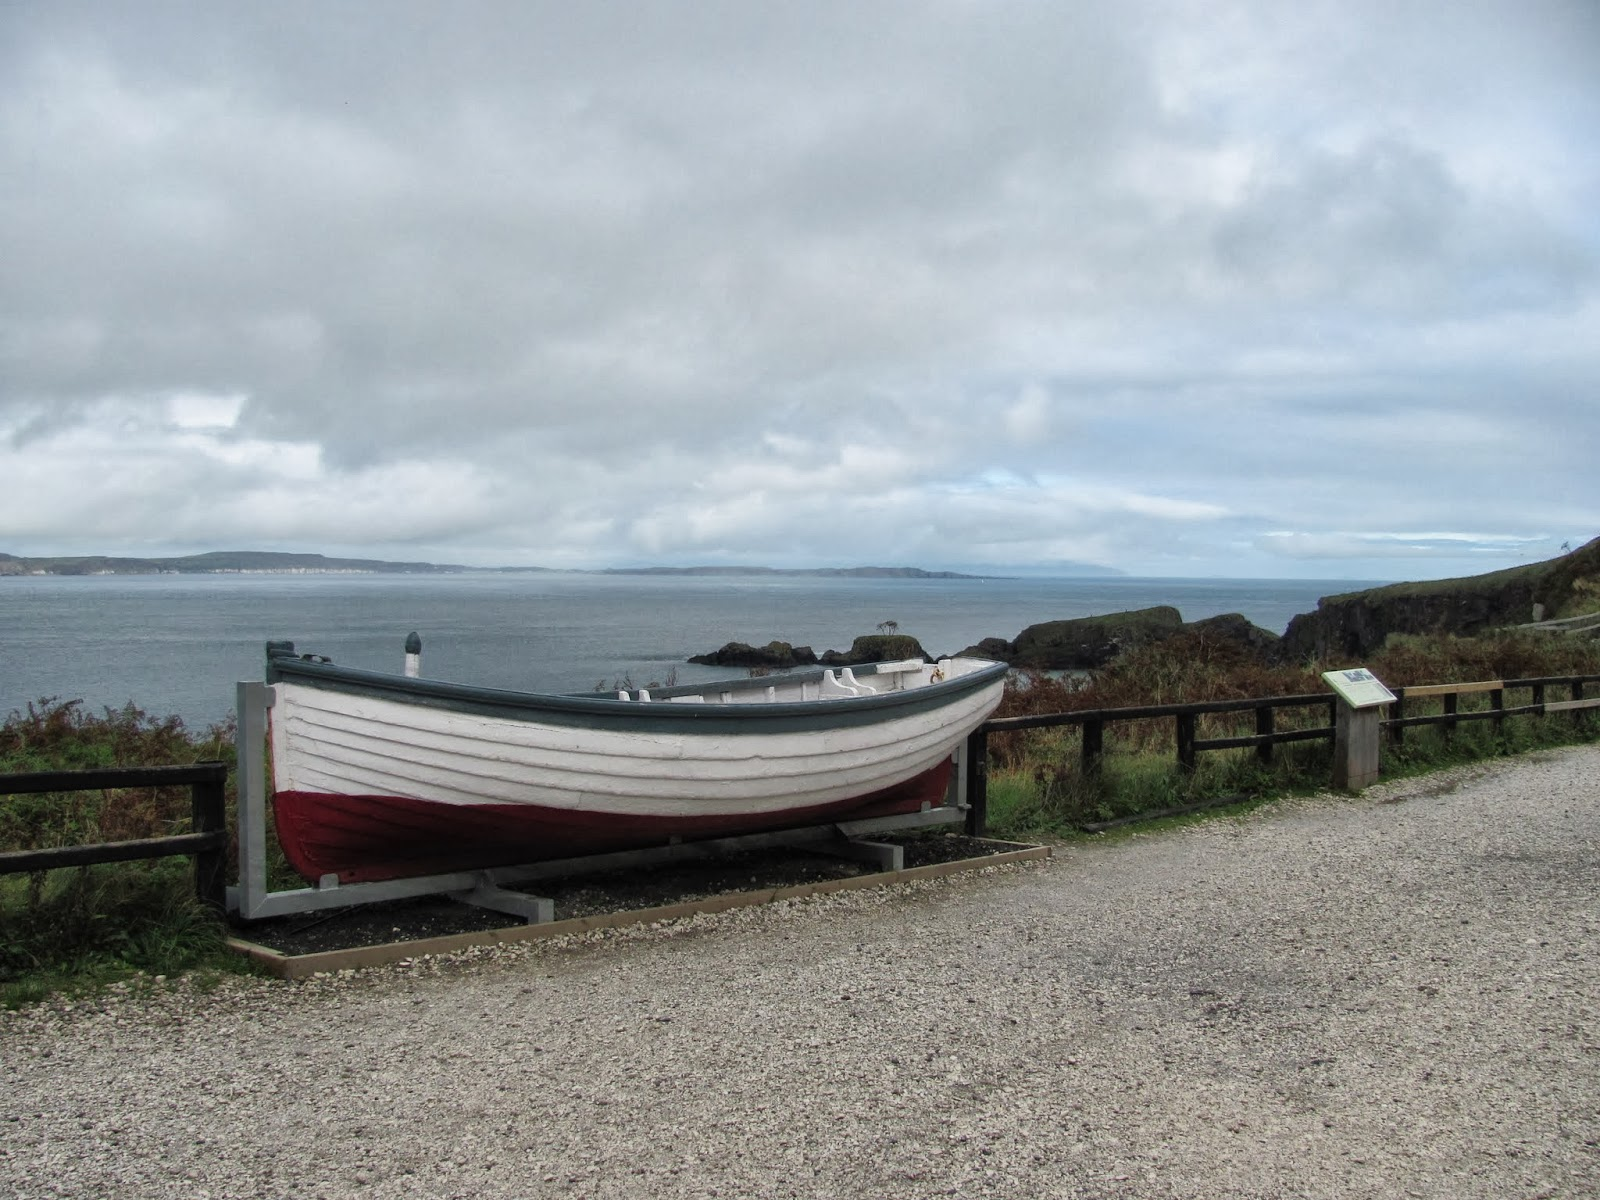 A small rowboat is on display on the Antrim Coast